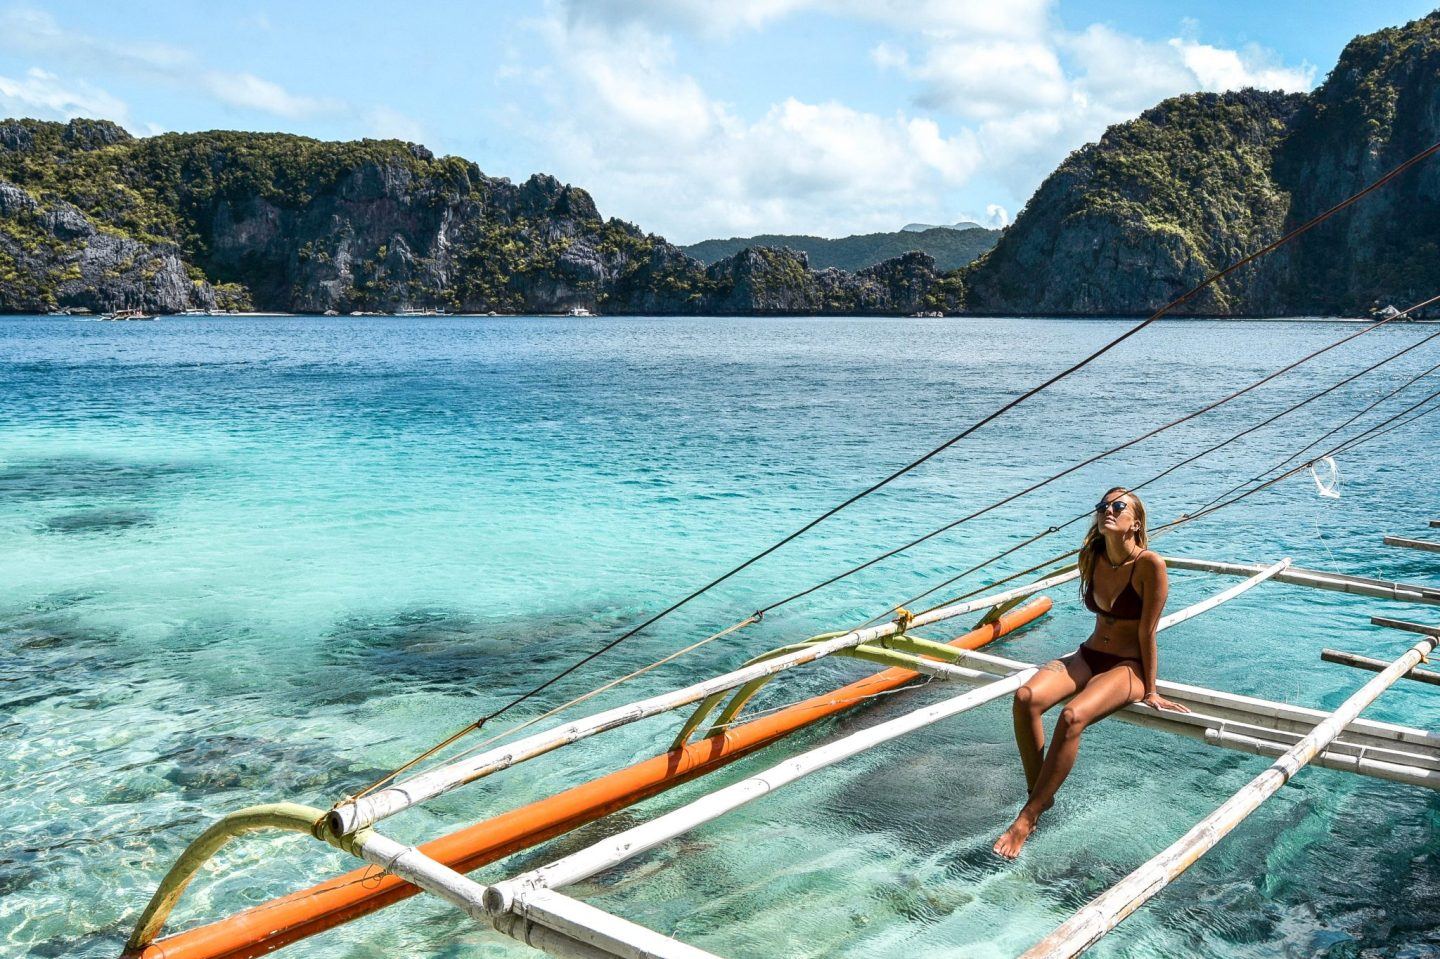 Wanderers & Warriors - Charlie & Lauren UK Travel Couple - Tour Packages In El Nido & Things To Do In El Nido - Boat Tour A & C